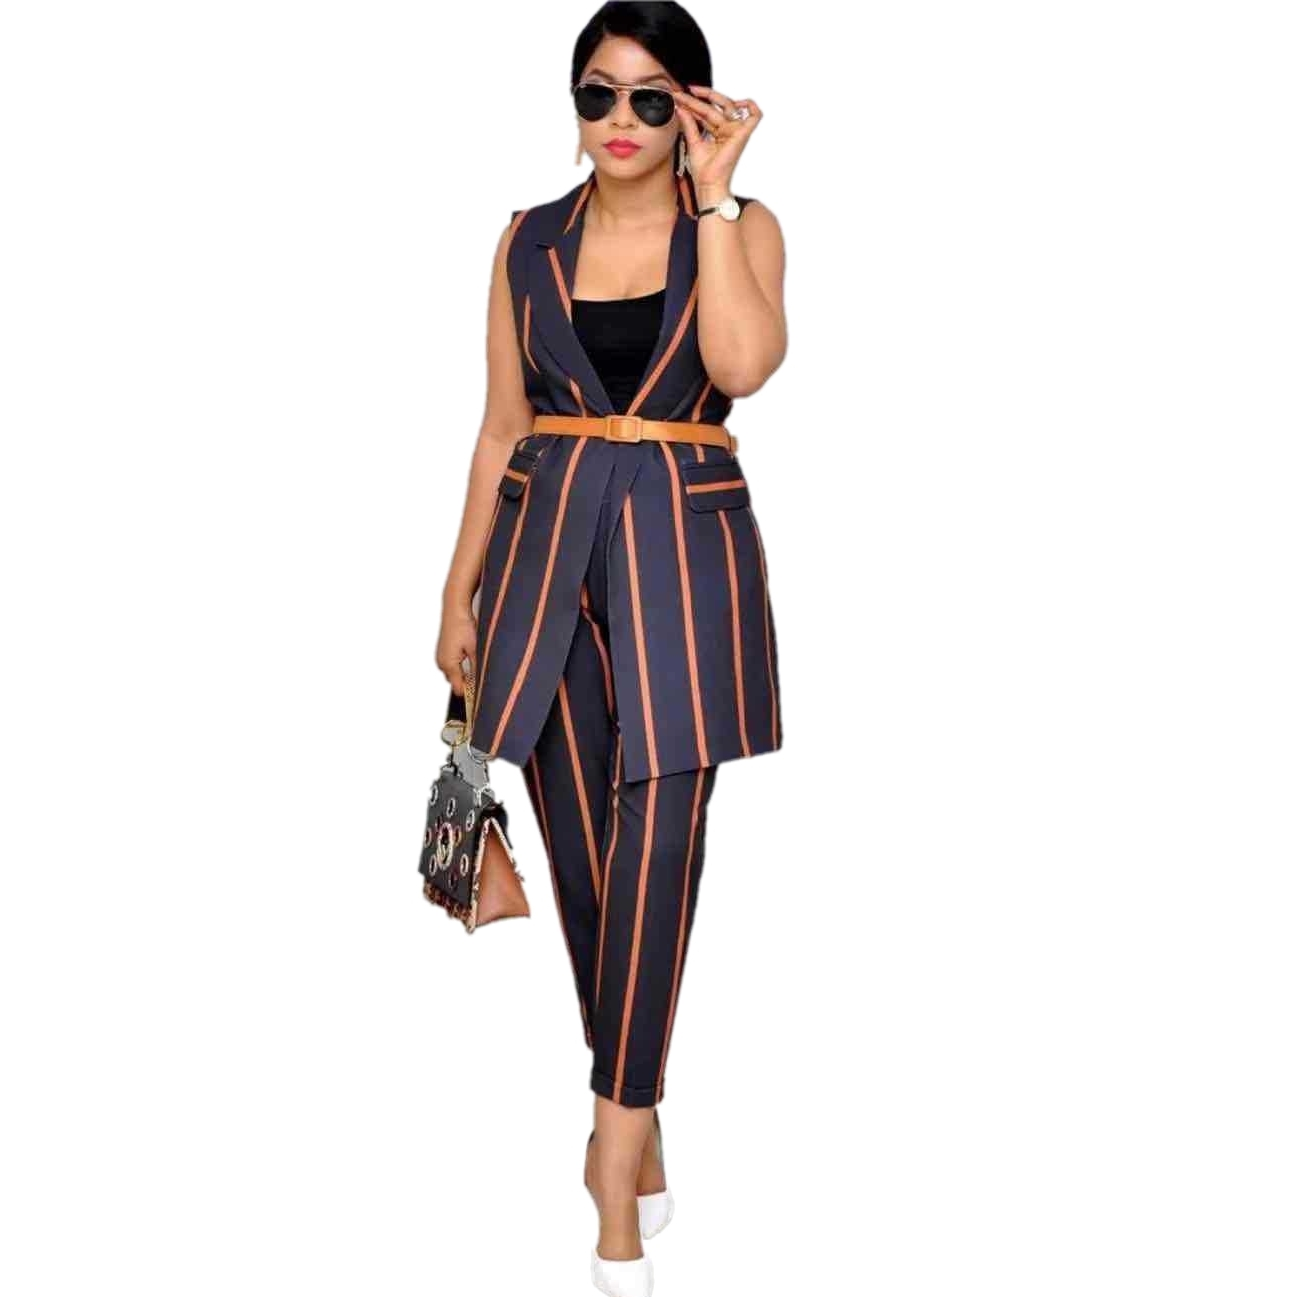 2 Piece Set African Clothes Africa Clothing Dashiki New Fashion Suits ( Tops + Pants ) Super Elastic Party Plus Size For Lady